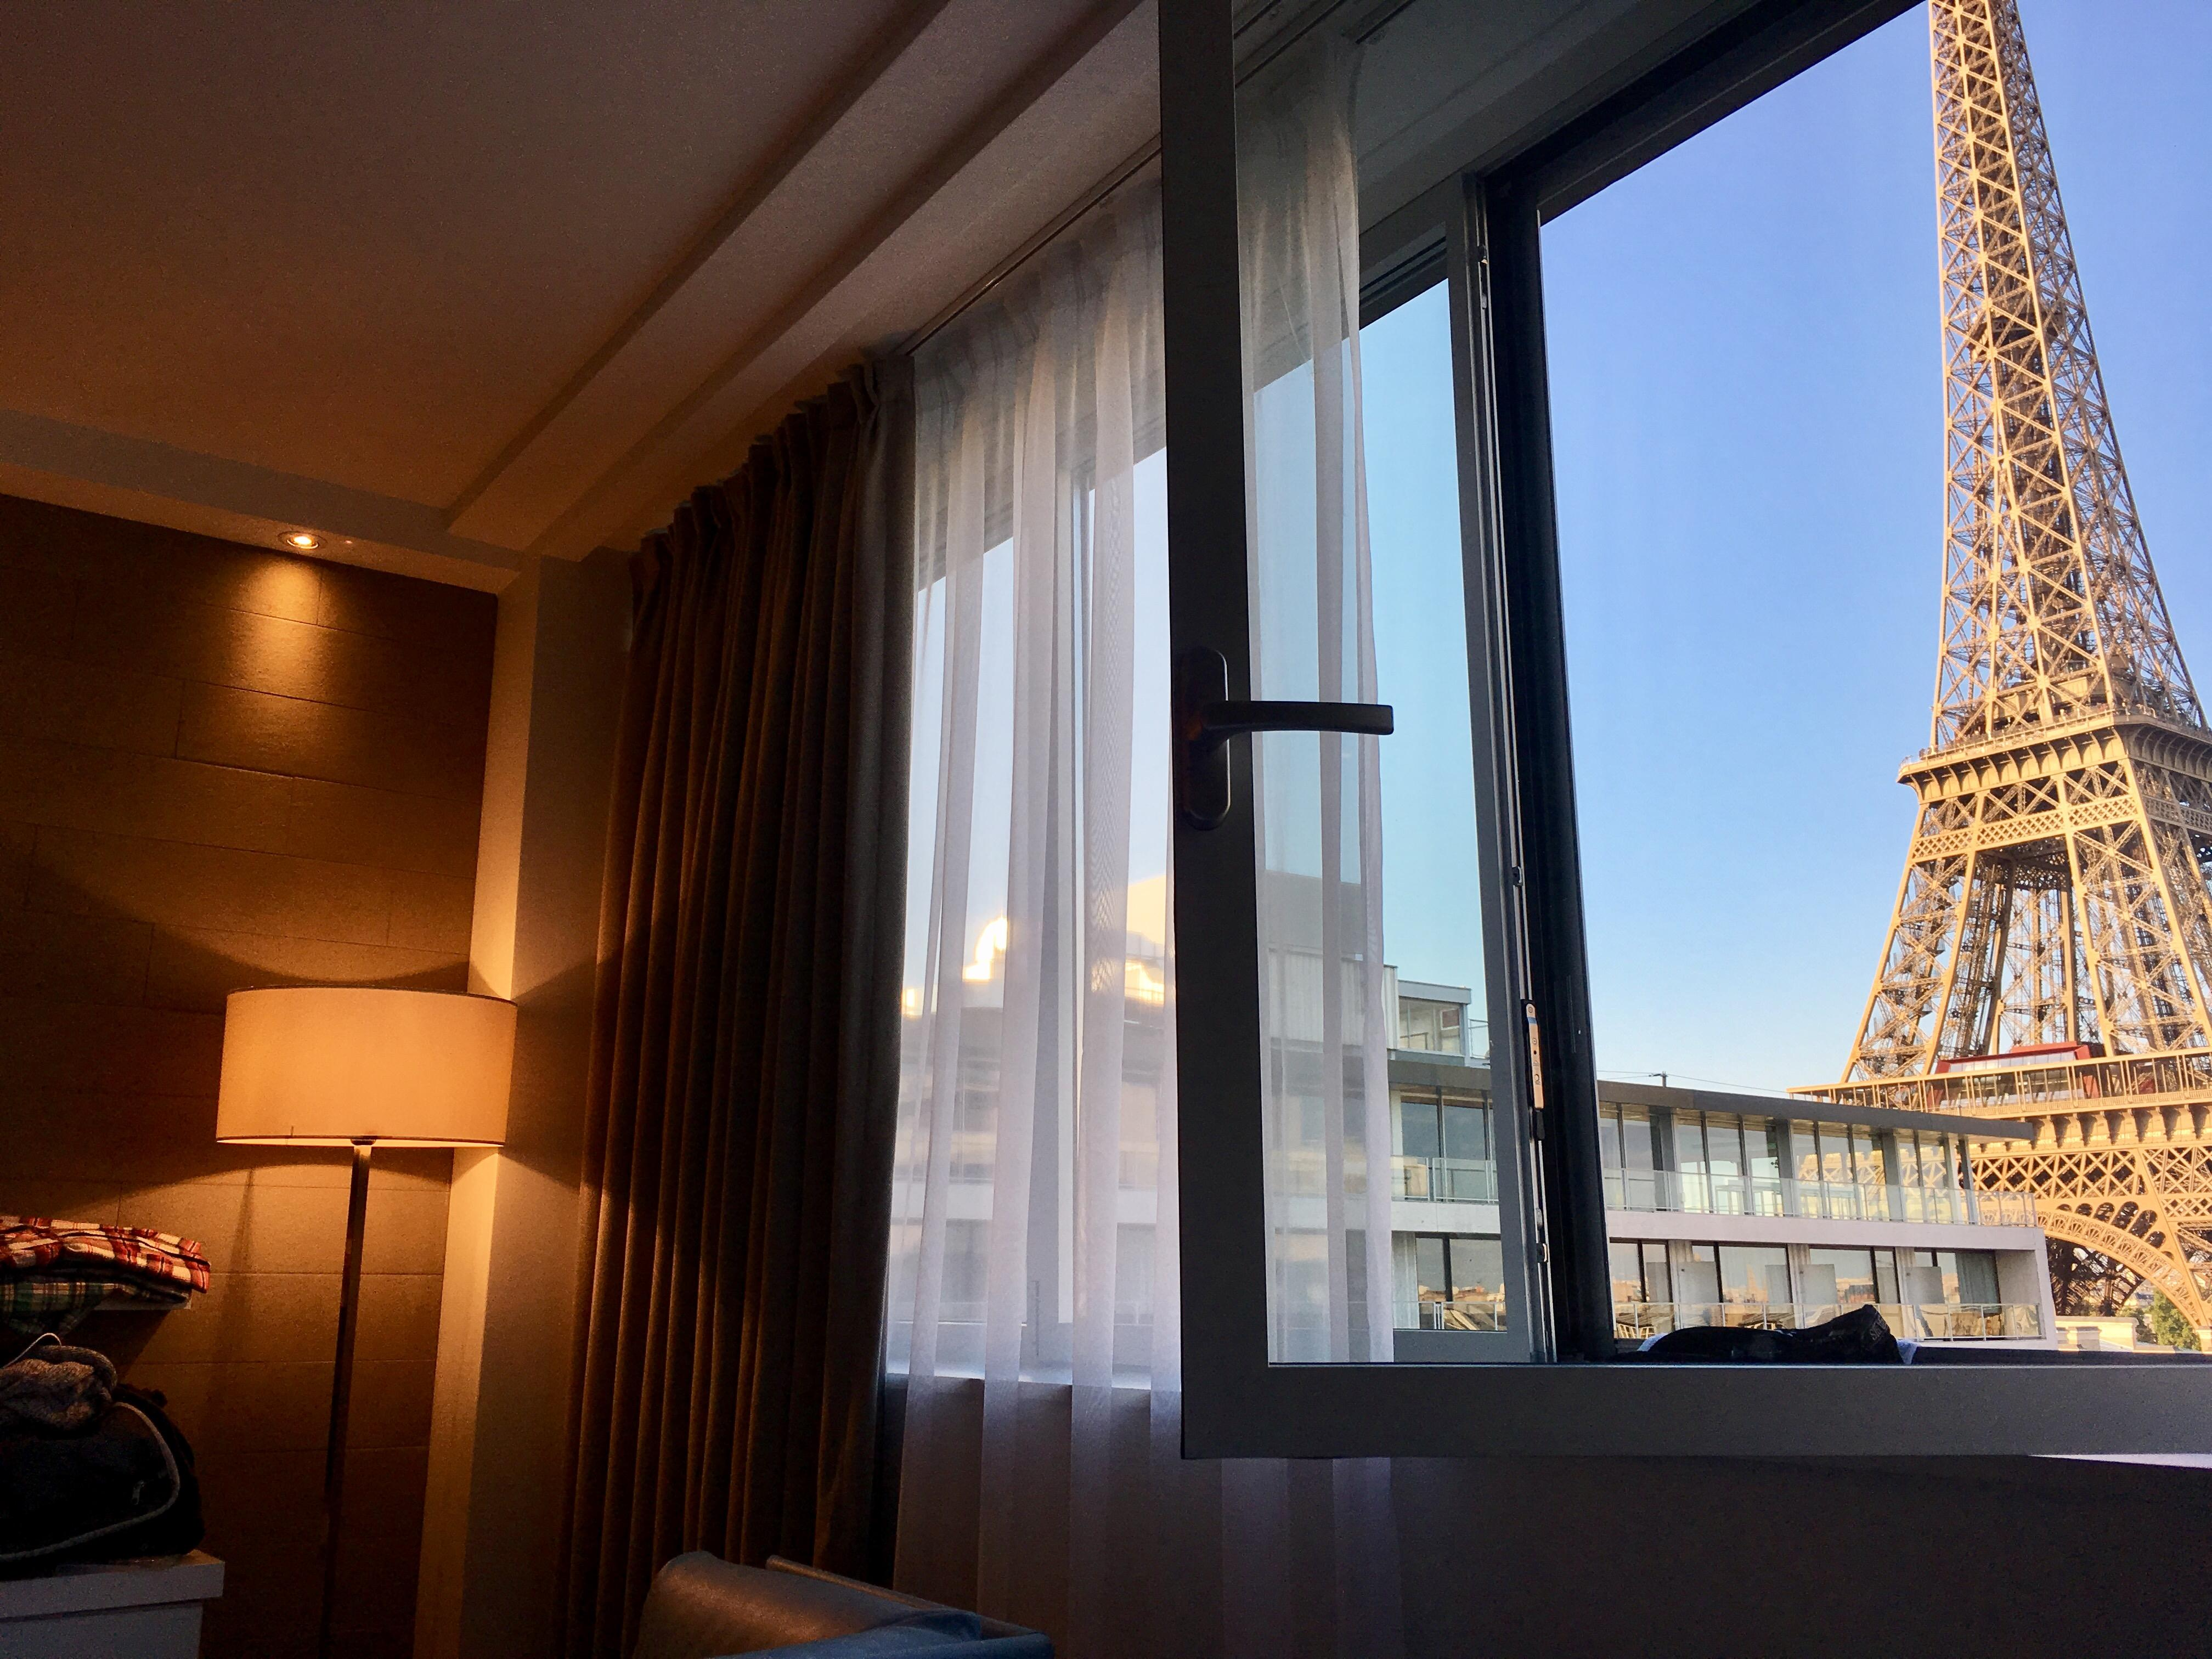 The Eiffel Tower is literally one block over and this is the view while lying on the bed !!